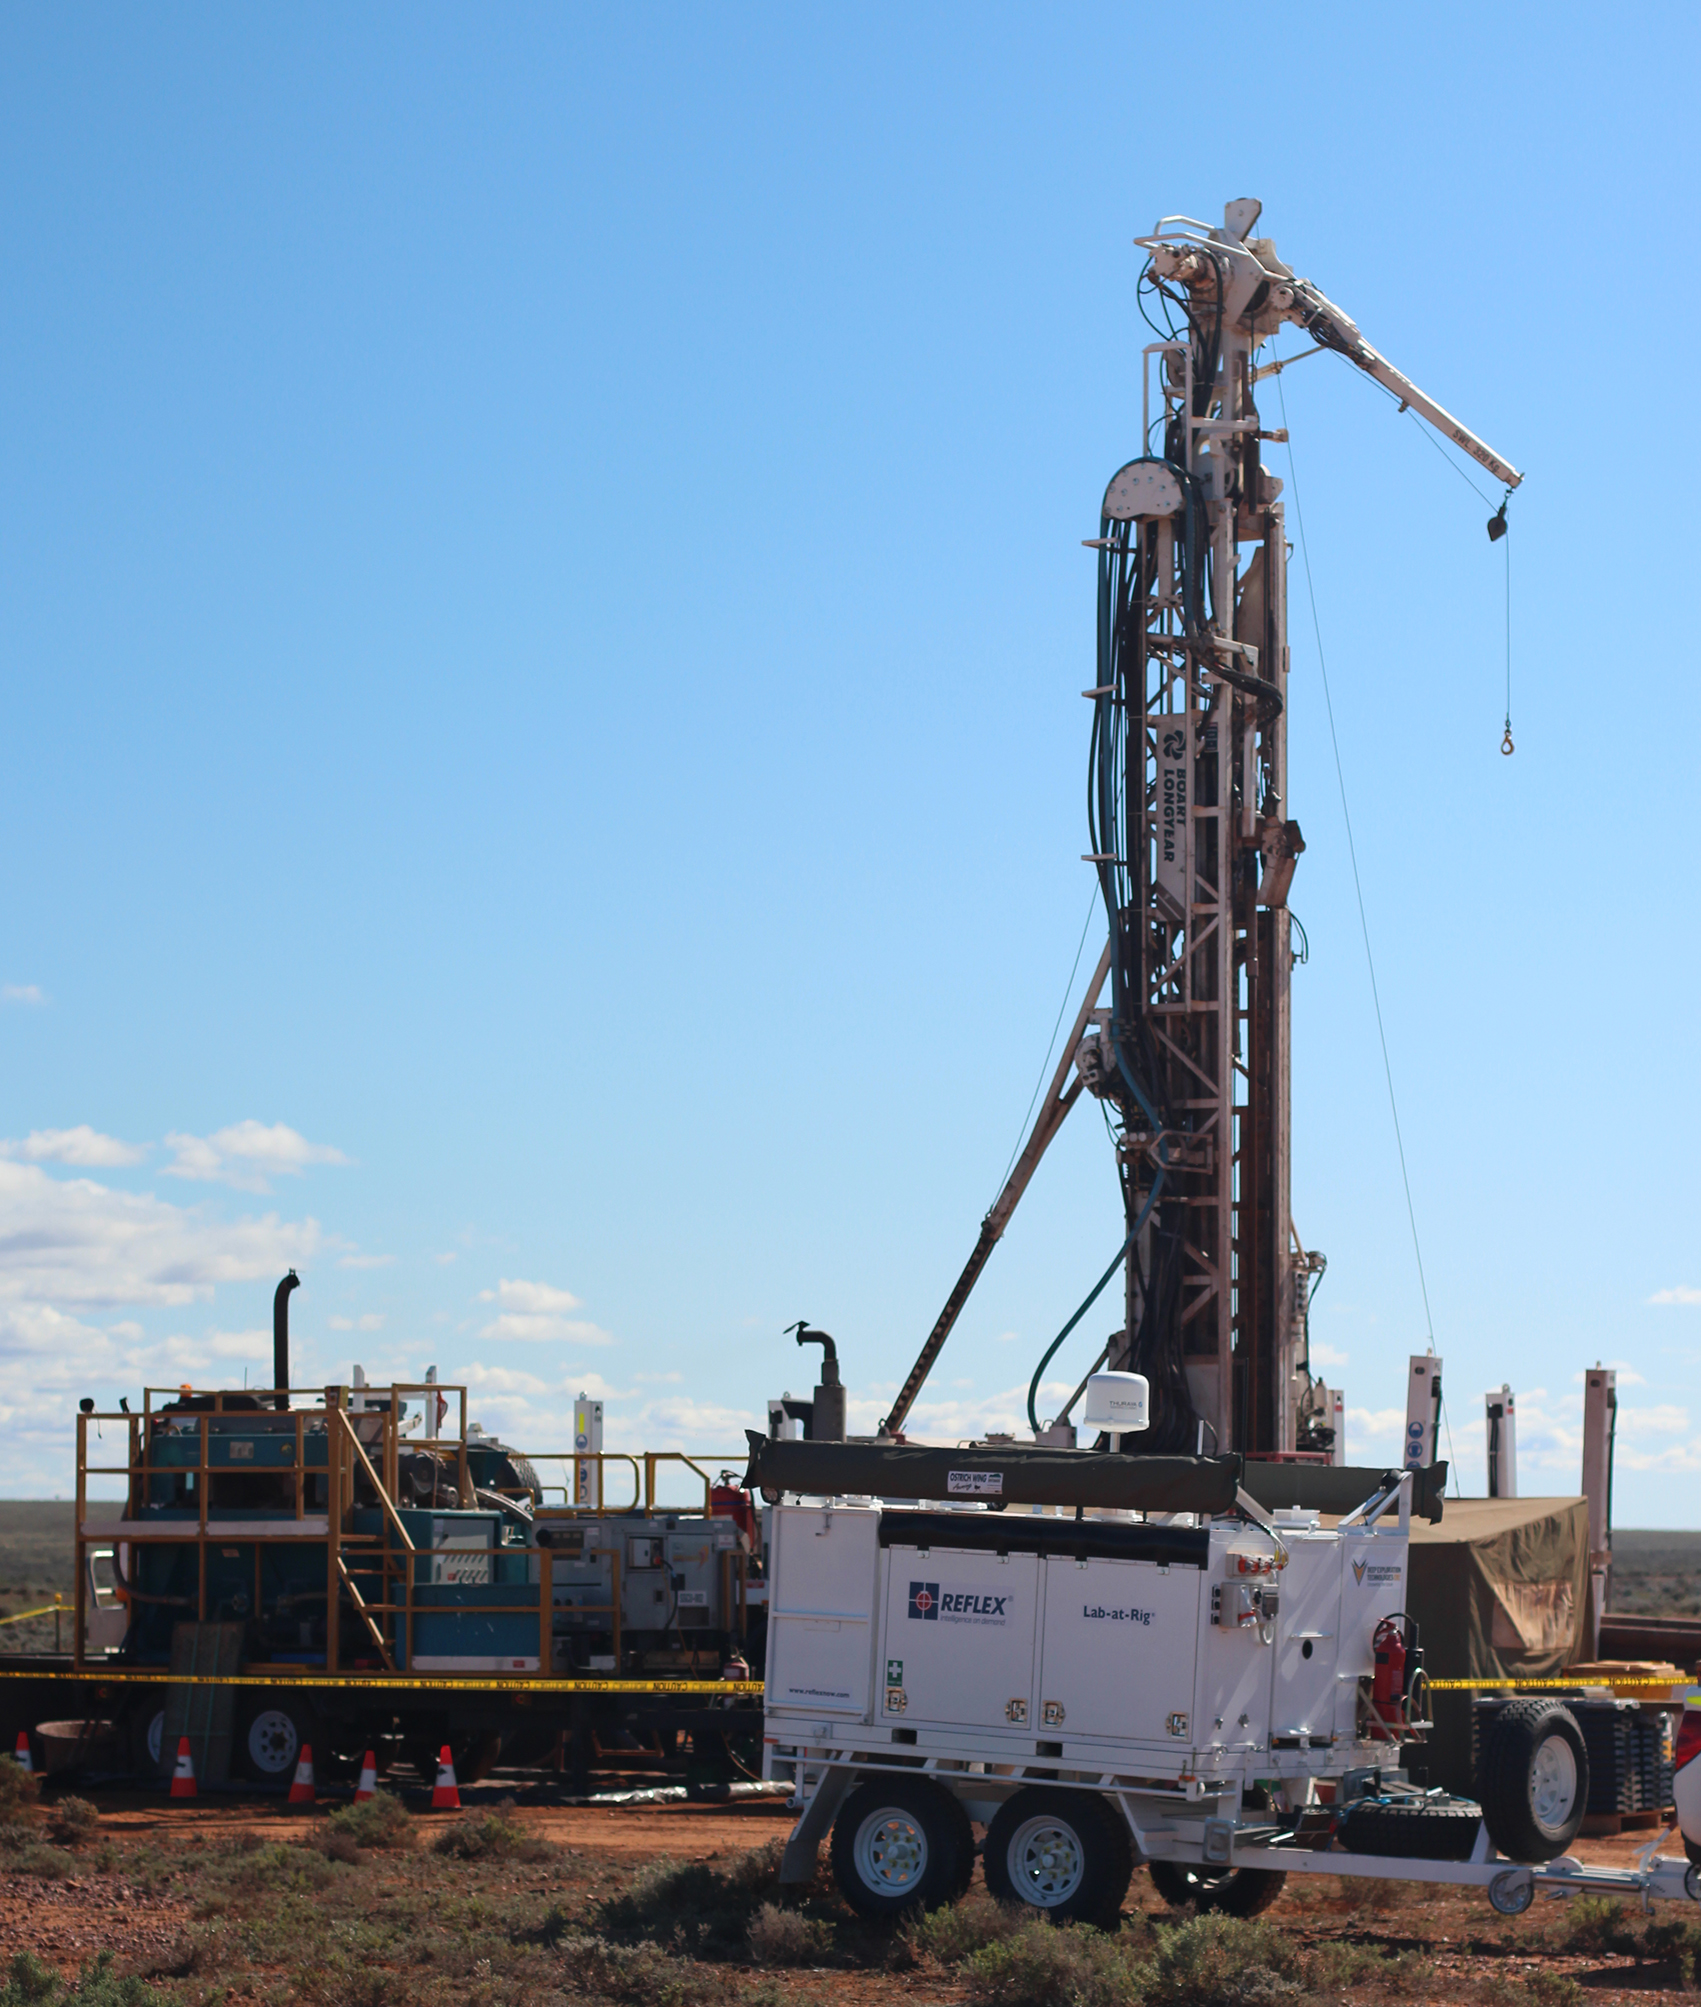 Lab-at-Rig set up at a drill site.